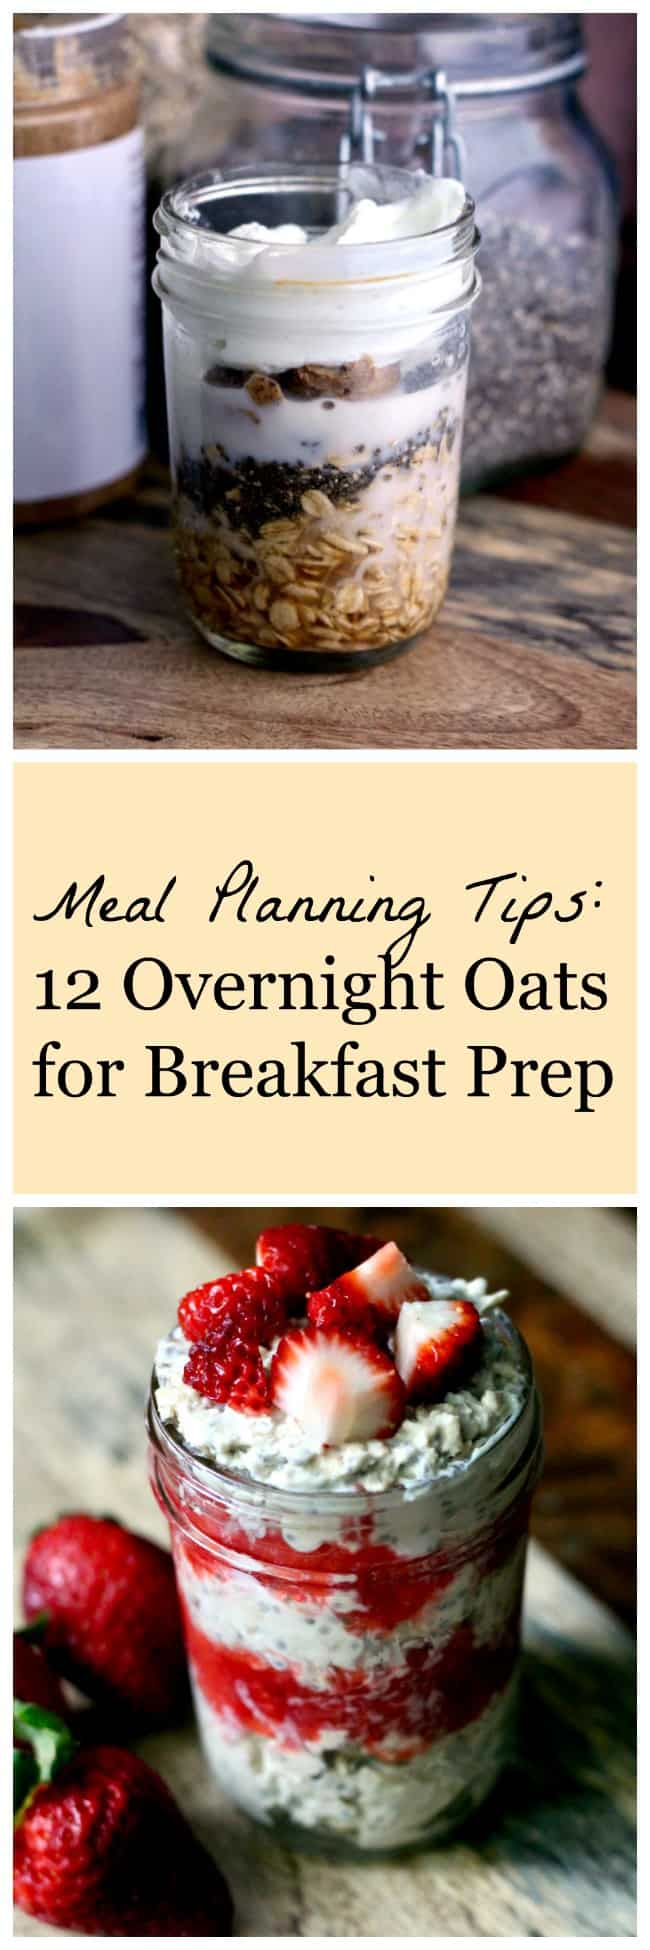 Meal Planning Tips: Overnight Oats for Breakfast Prep